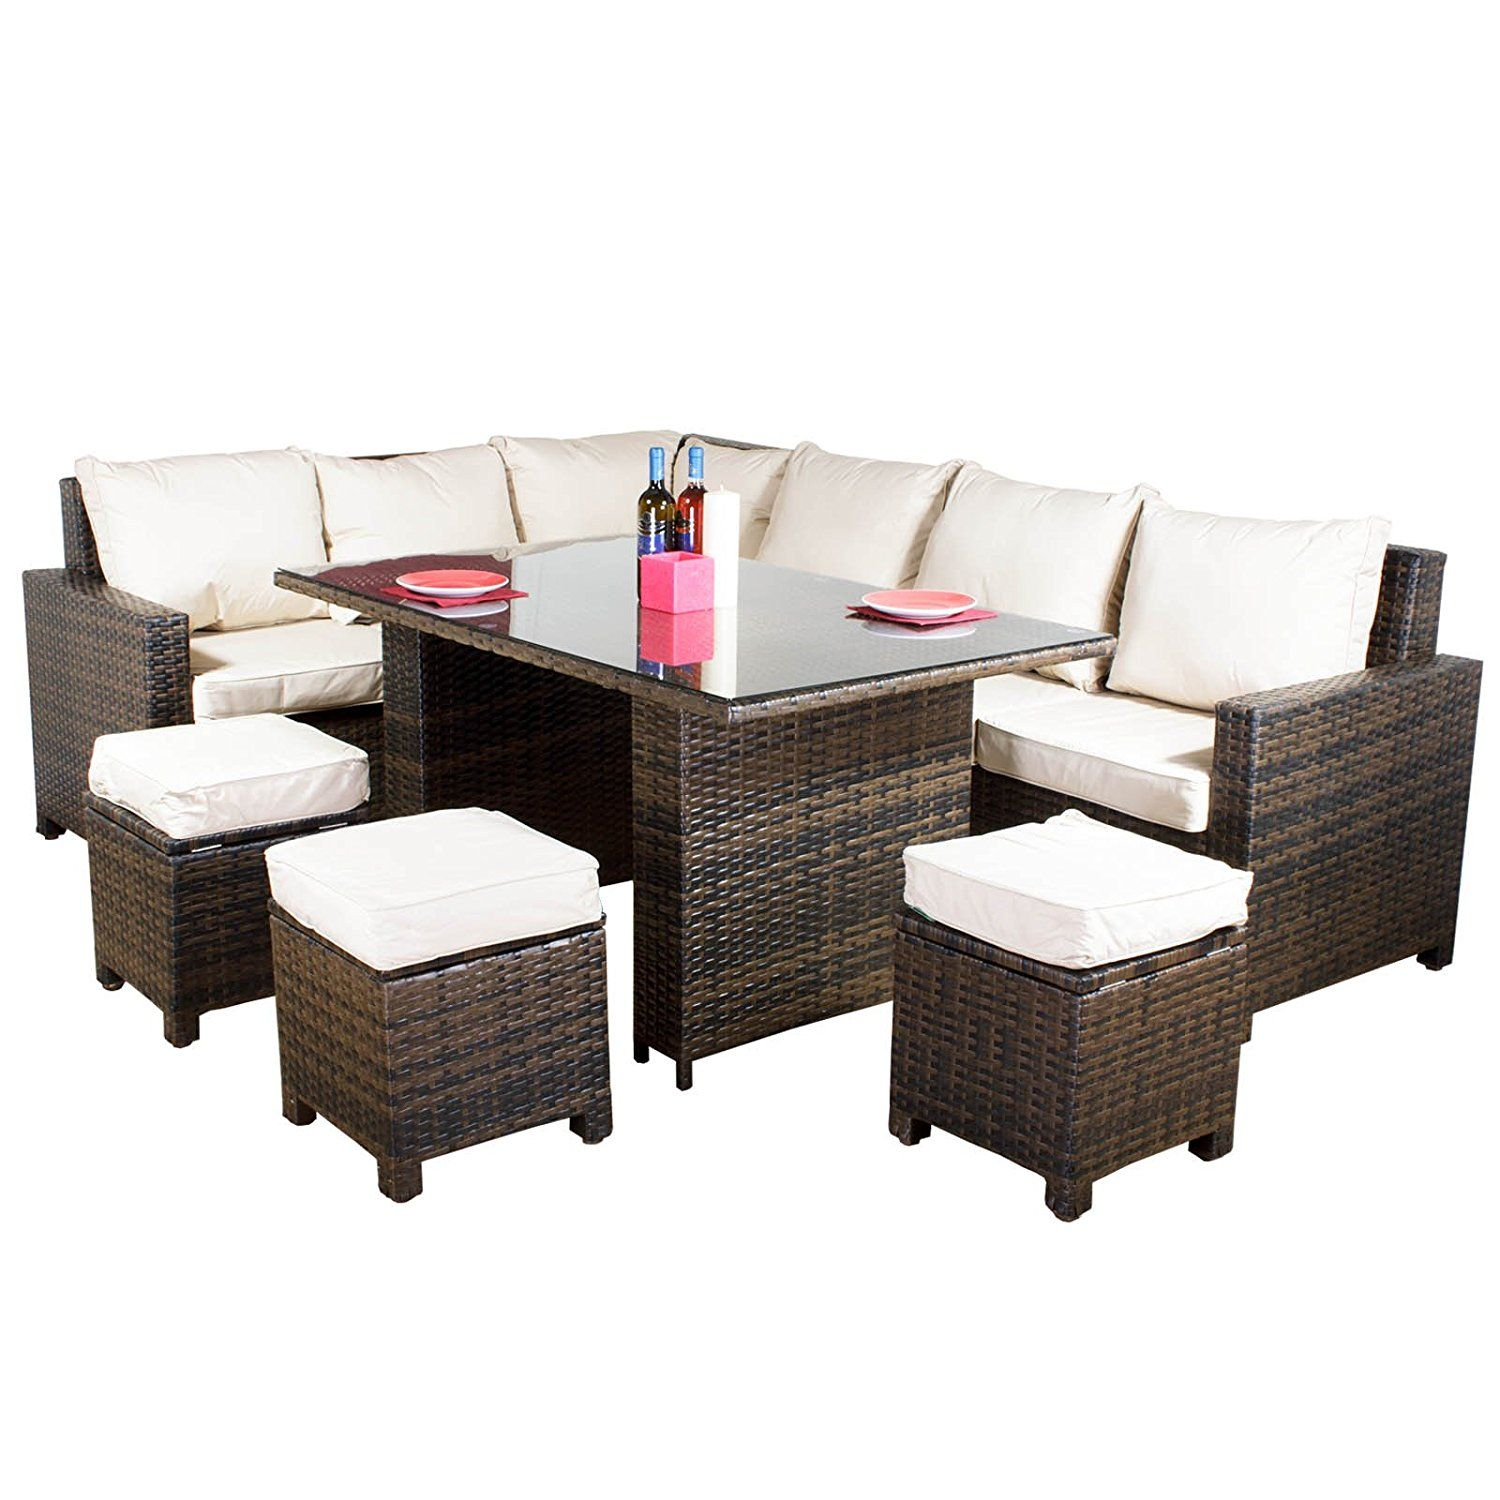 Best Great Value Oseasons Morocco Flex Eight Seater Sofa Dining Set Brown Amazon Co Uk … Patio 400 x 300